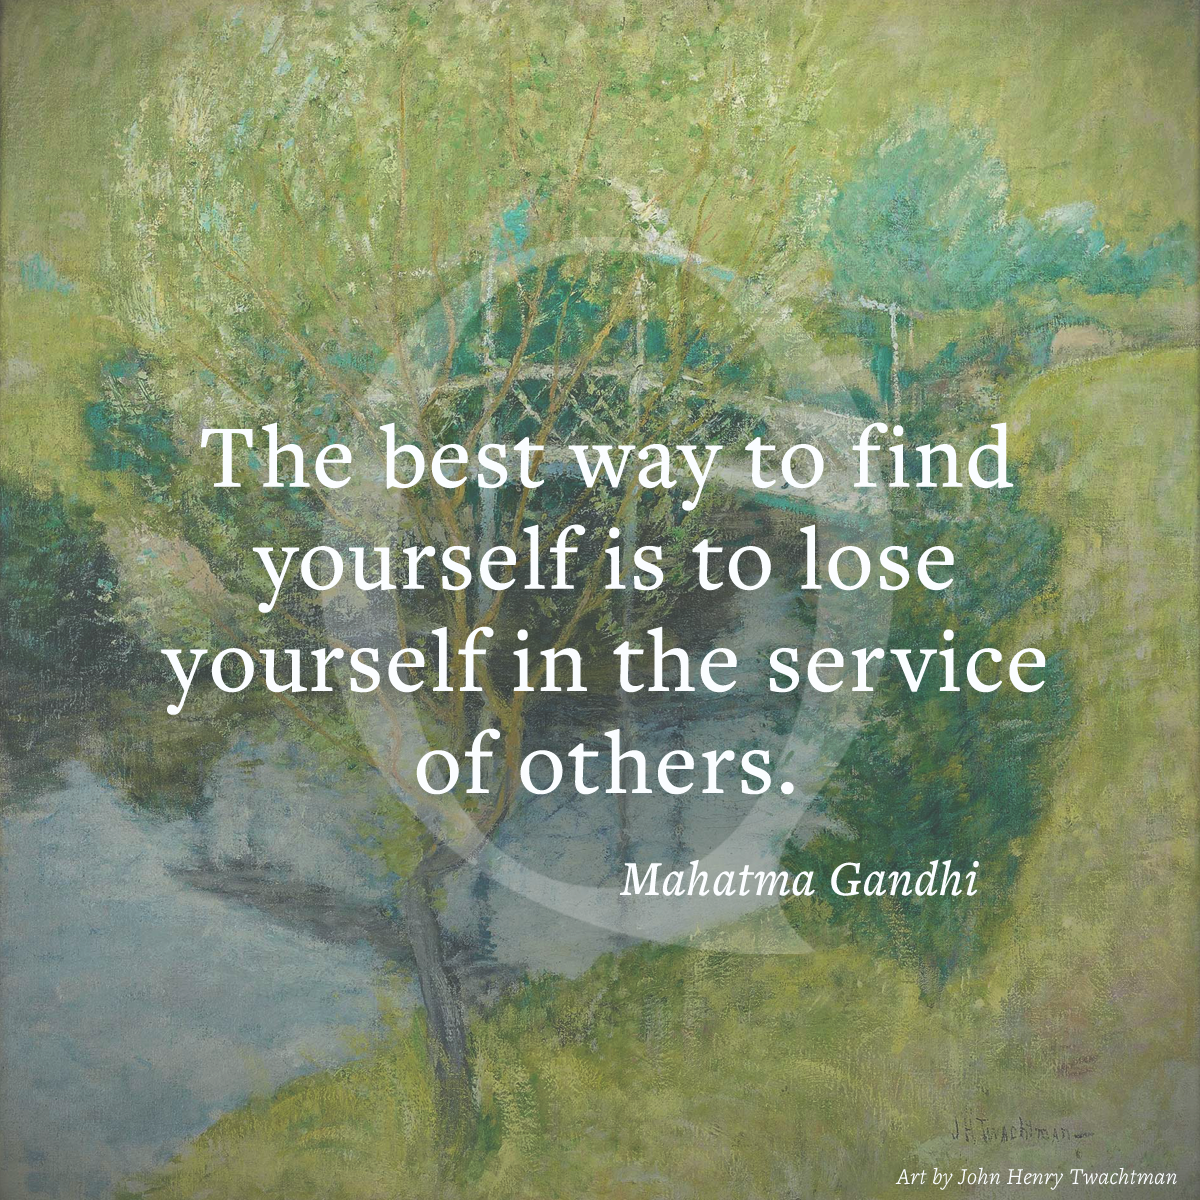 Helping Others Quotes Fascinating Your Best Self And Motivation May Appear When You Focus Your